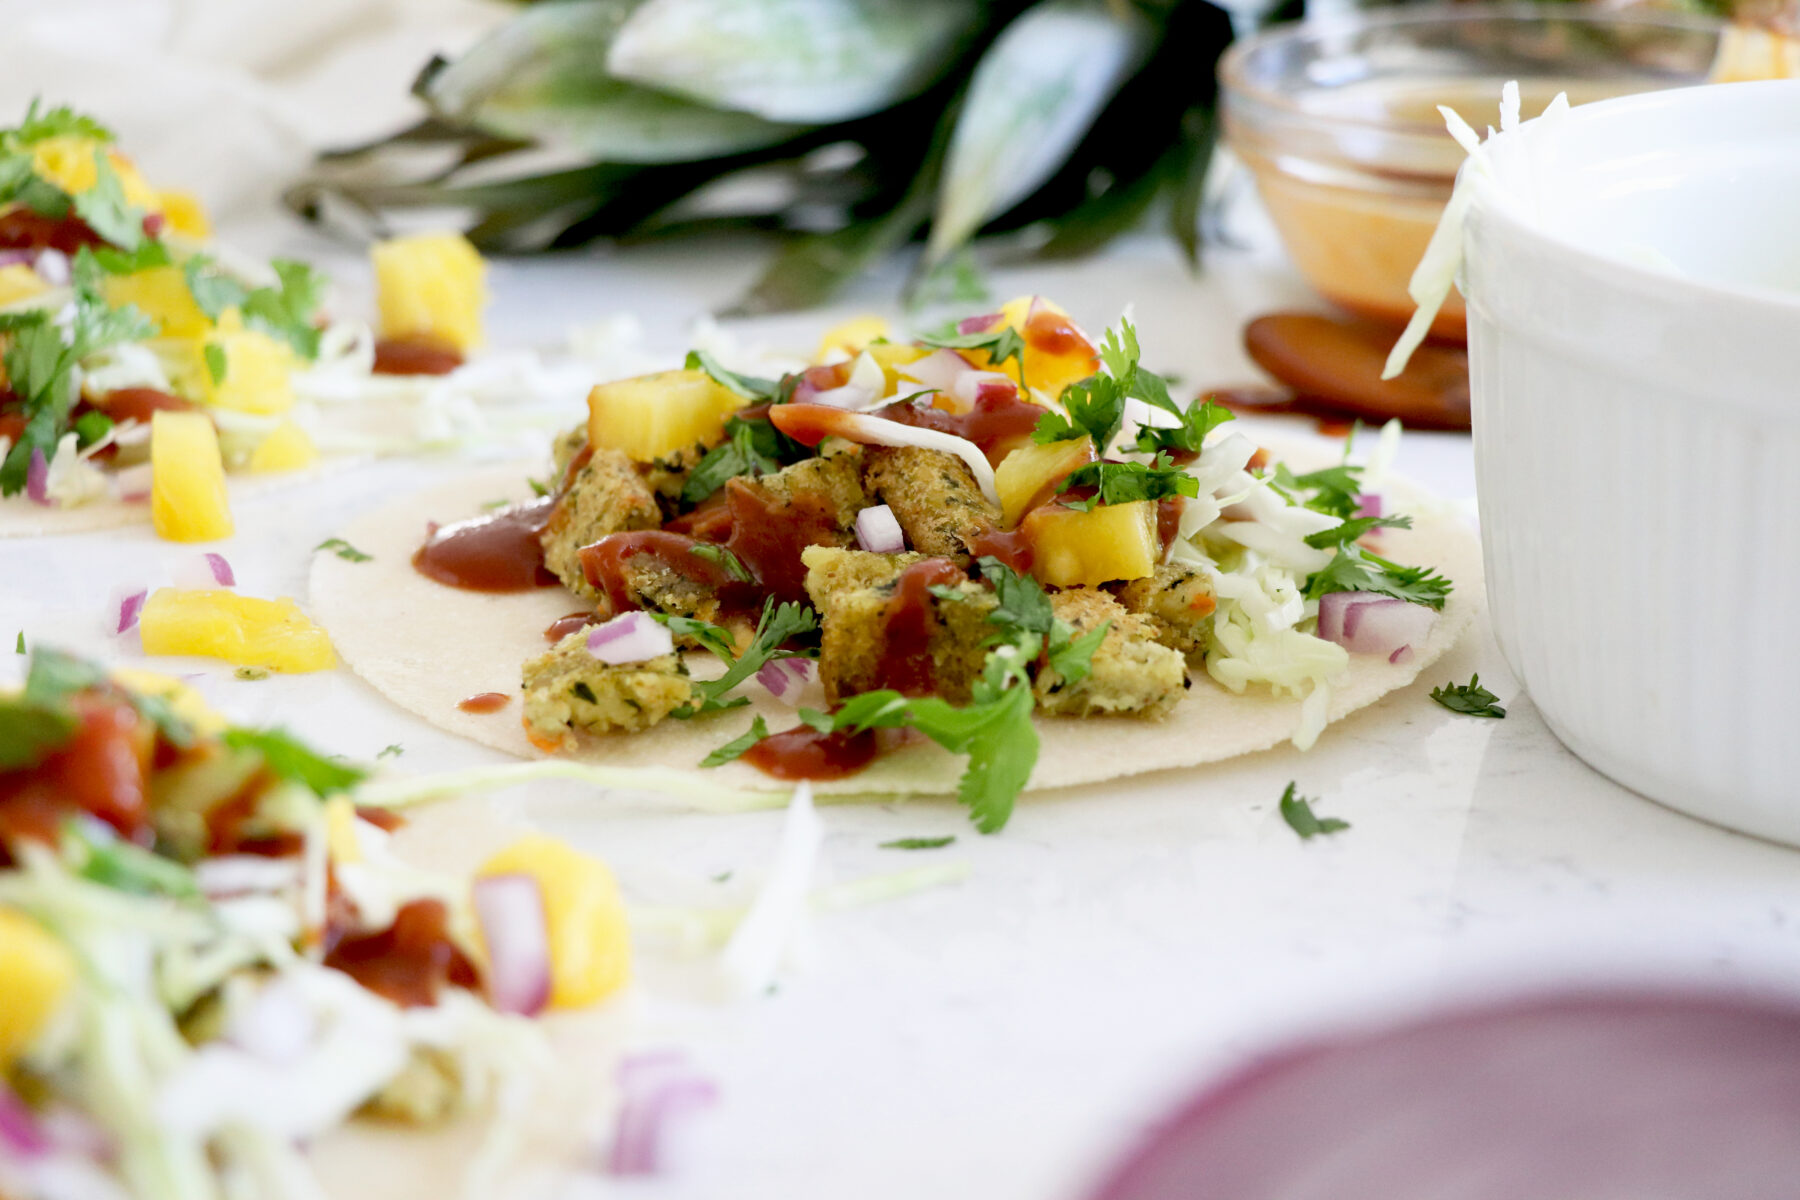 BBQ pineapple tacos with crumbled veggie burger. Pineapple in the background.